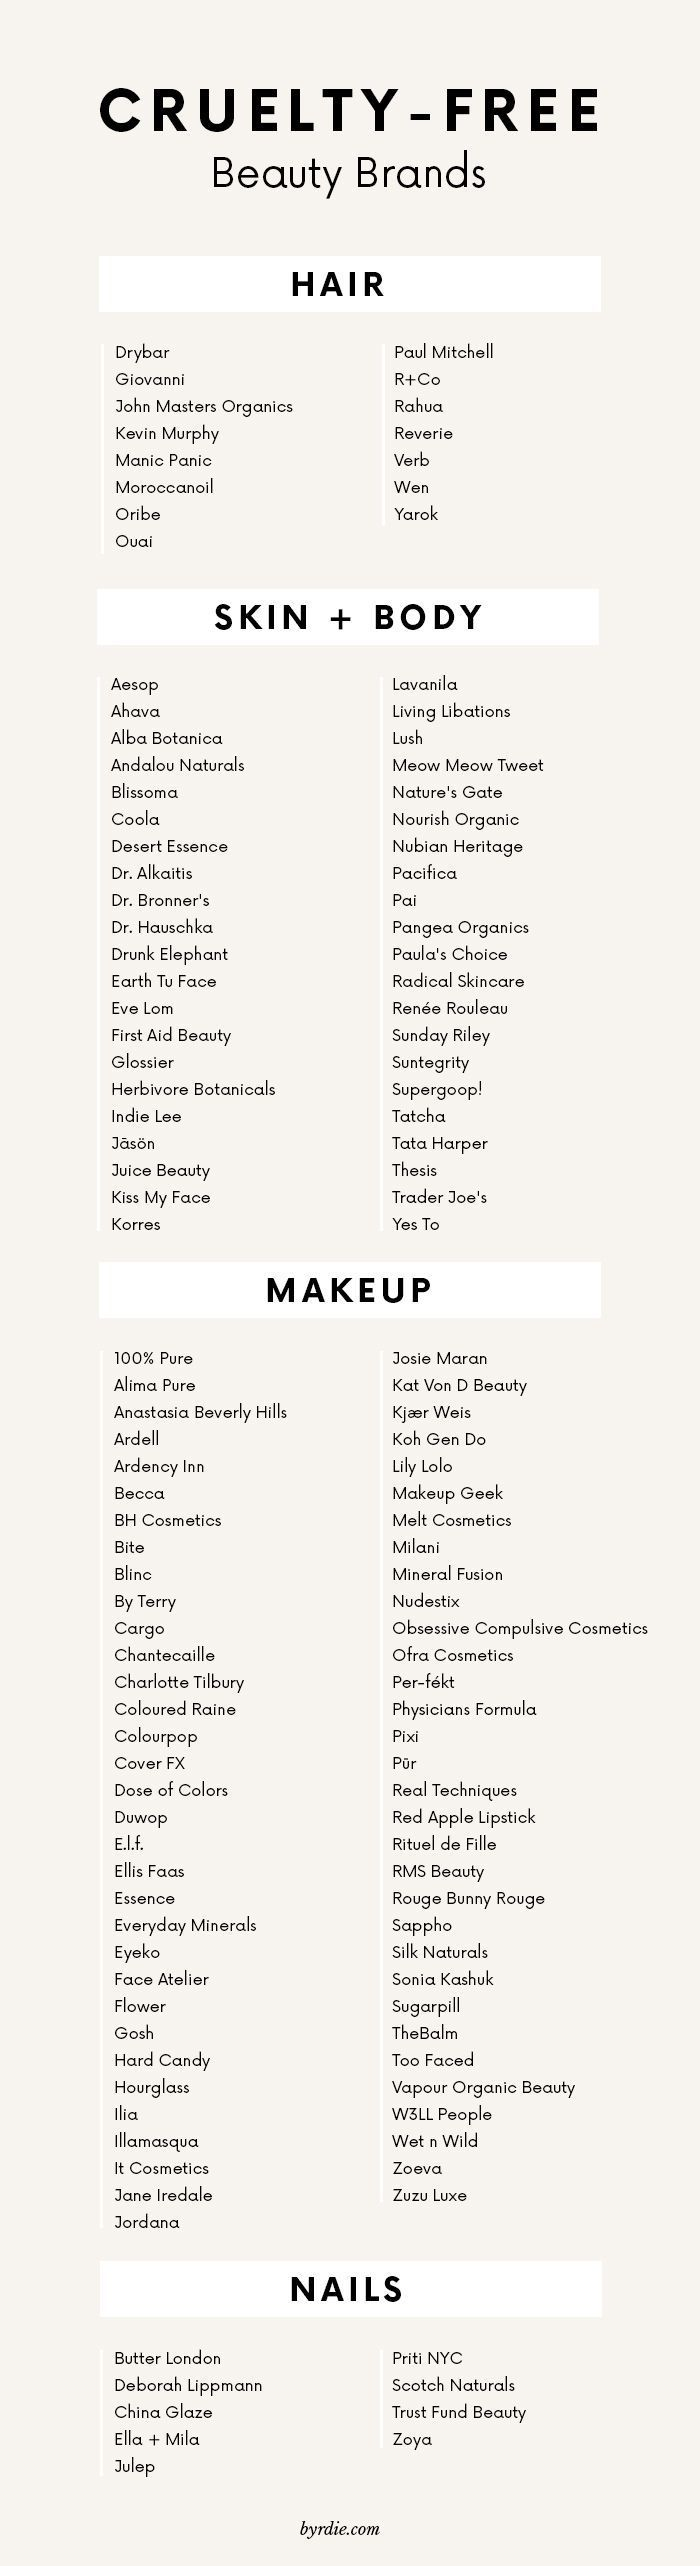 The best cruelty-free beauty brands for hair, skin, makeup and nails. (scheduled via http://www.tailwindapp.com?utm_source=pinterest&utm_medium=twpin&utm_content=post193919419&utm_campaign=scheduler_attribution)